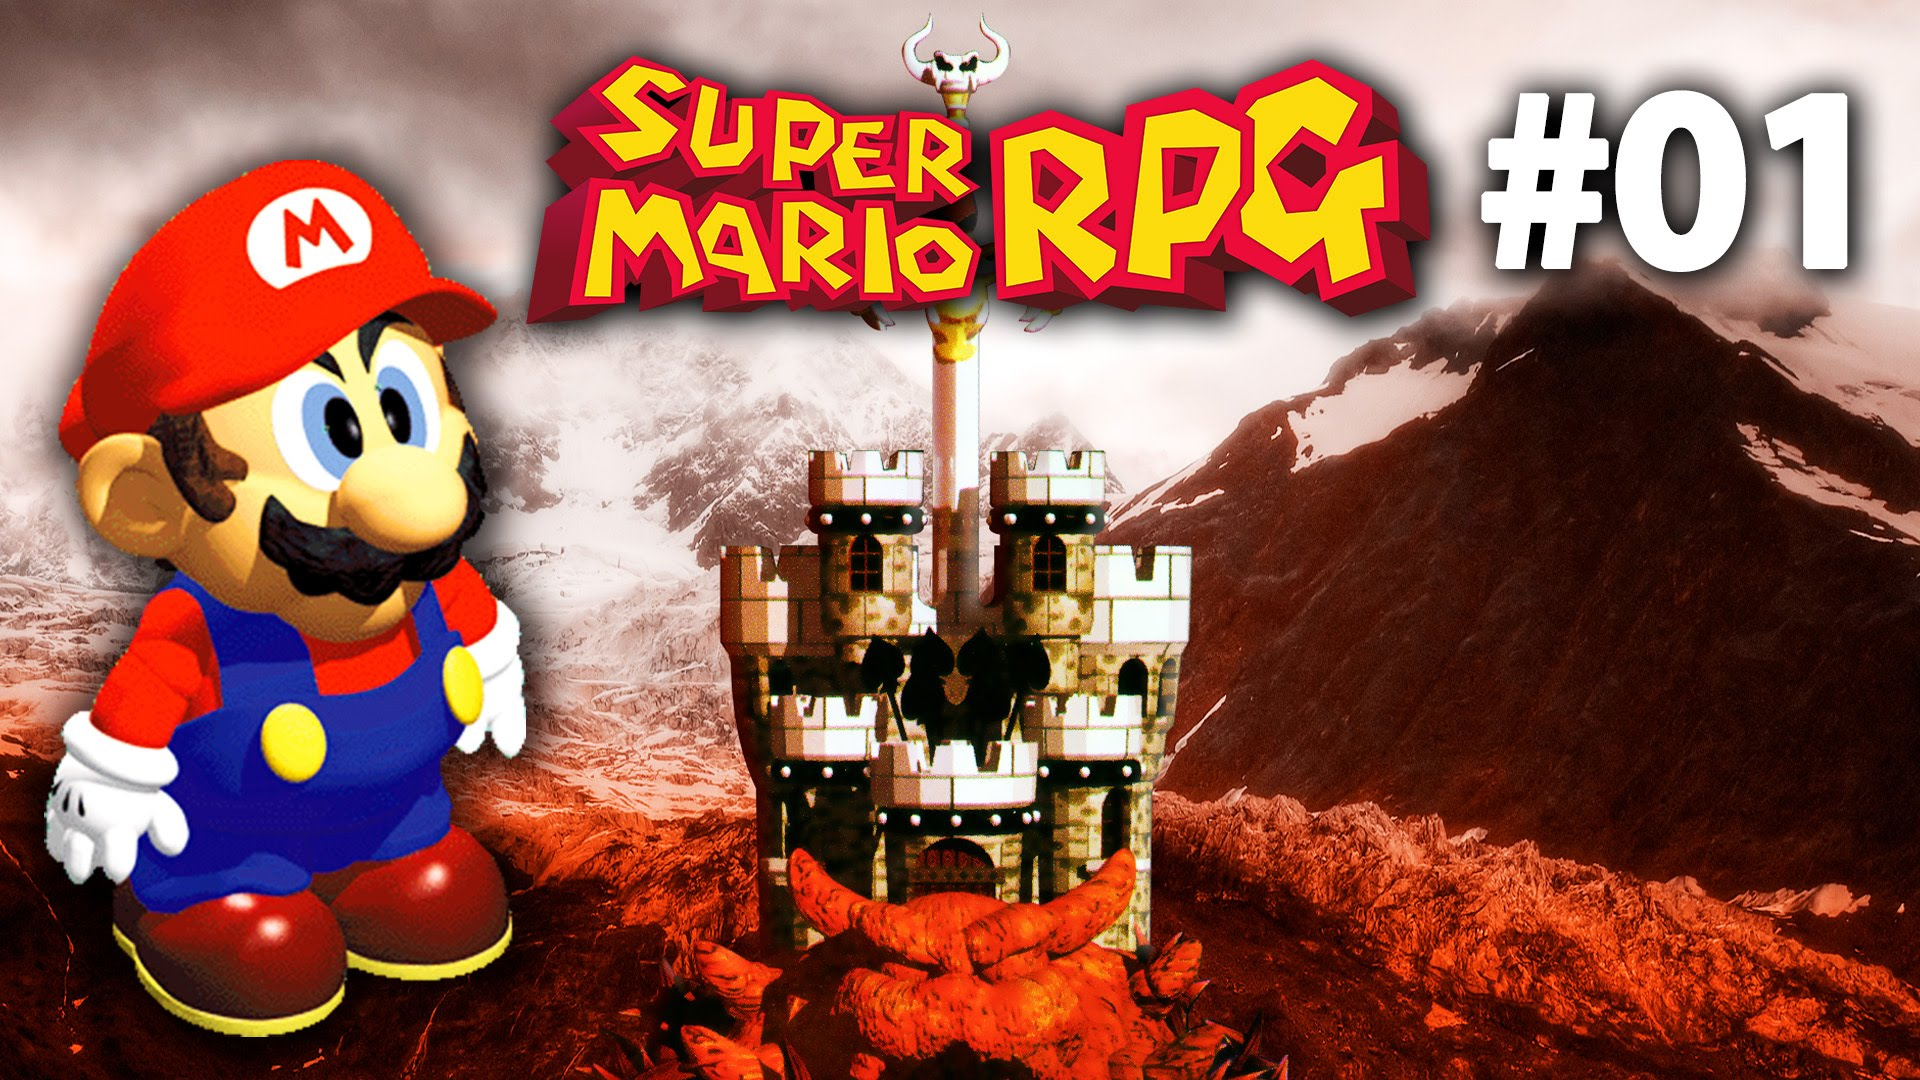 Super Mario Rpg: Legend Of The Seven Stars wallpapers, Video